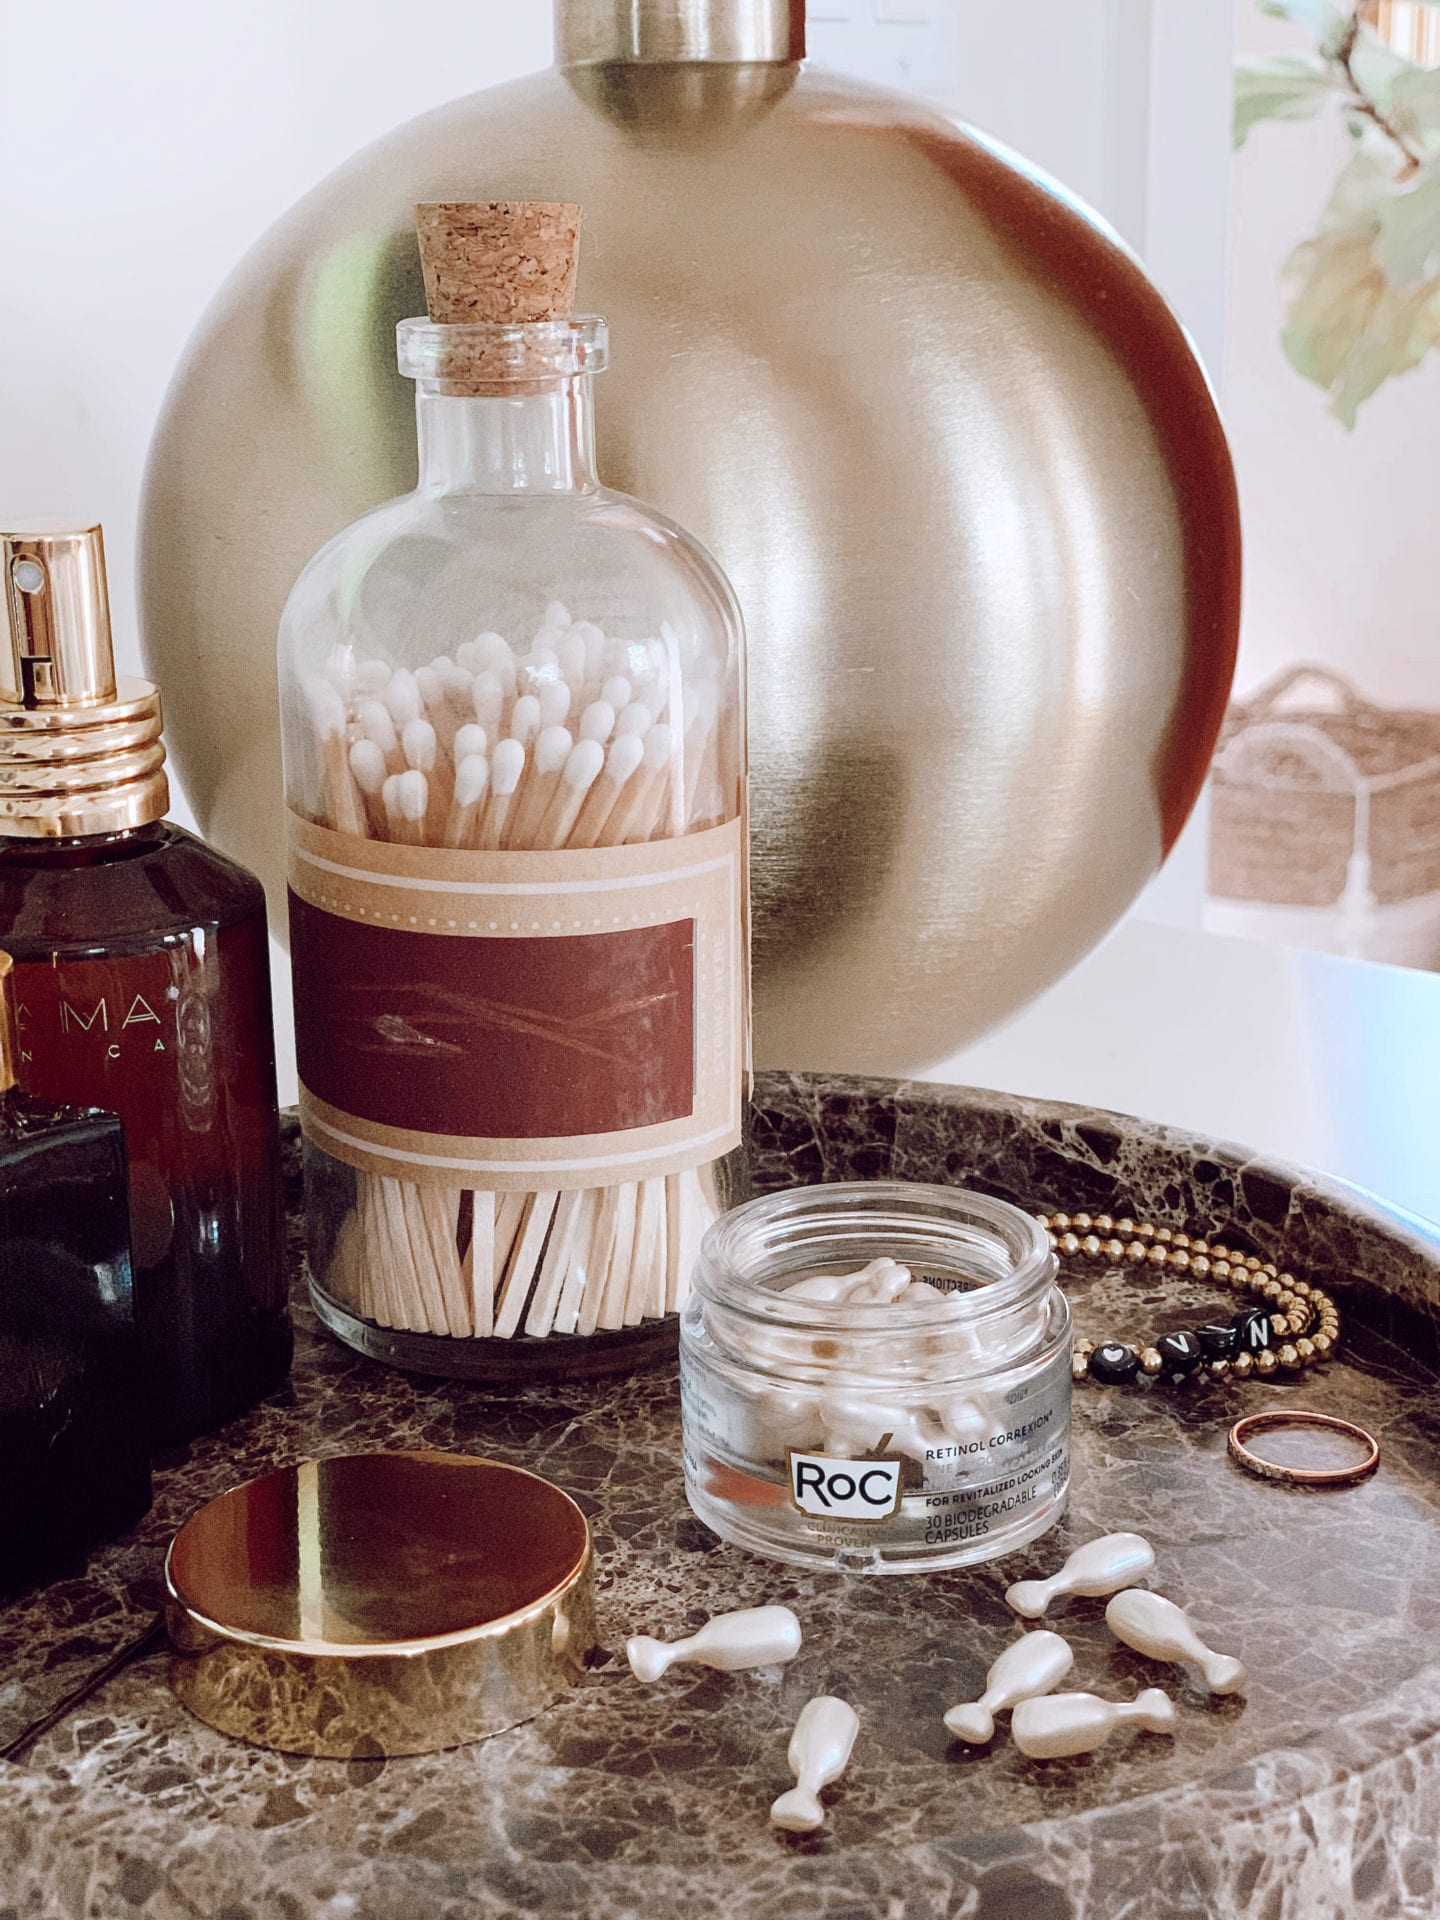 Roc Retinol by popular San Francisco beauty blog, Just Add Glam: image of Roc Retinol capsules on a marble tray next to a jar of q-tips, gold stack bracelets, and a bottle of perfume.